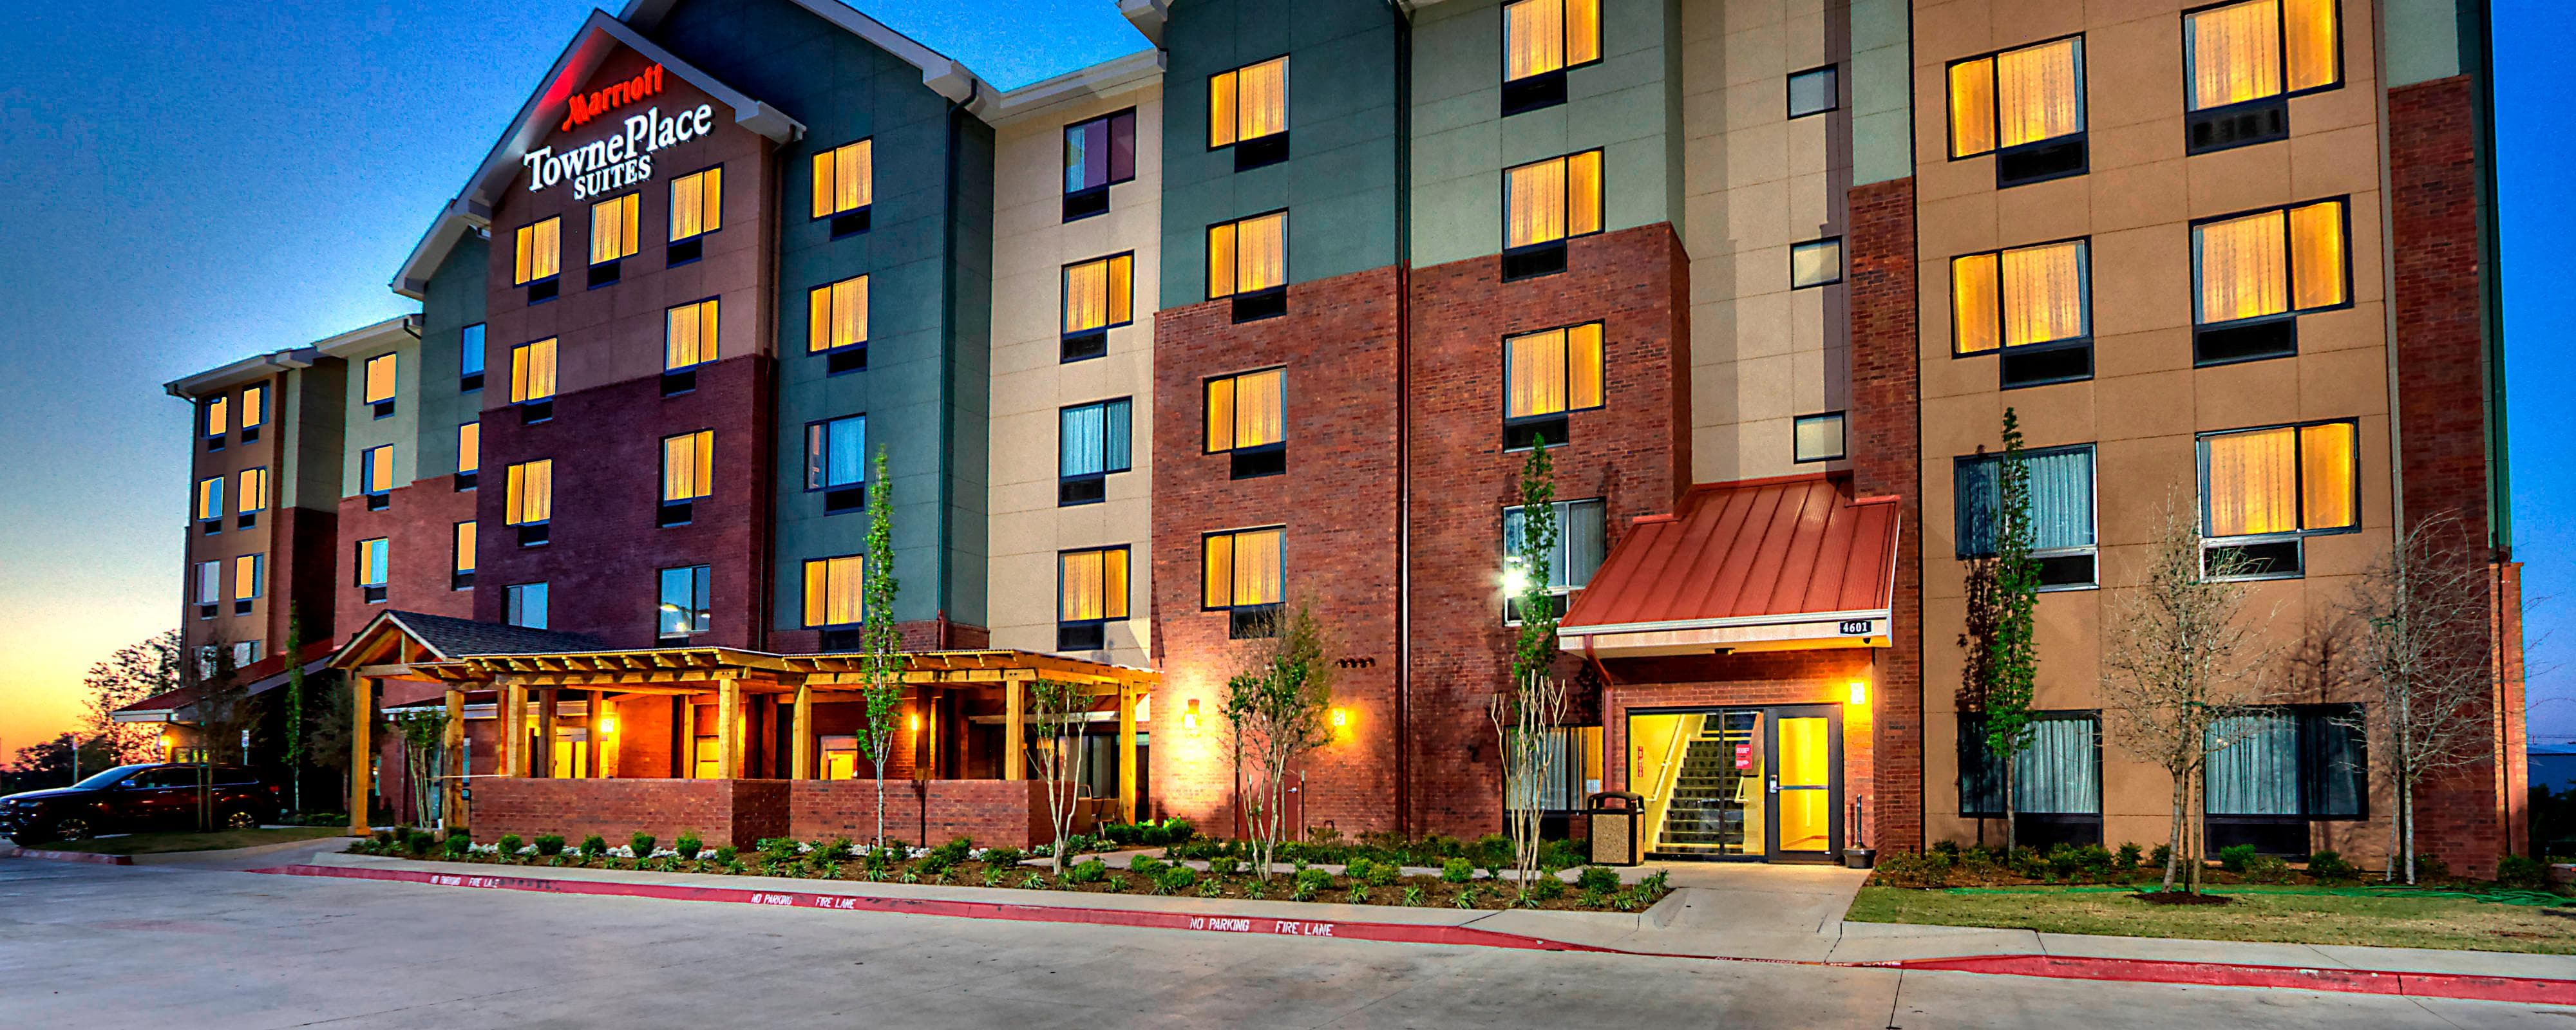 Extended Stay Oklahoma City Airport Towneplace Suites